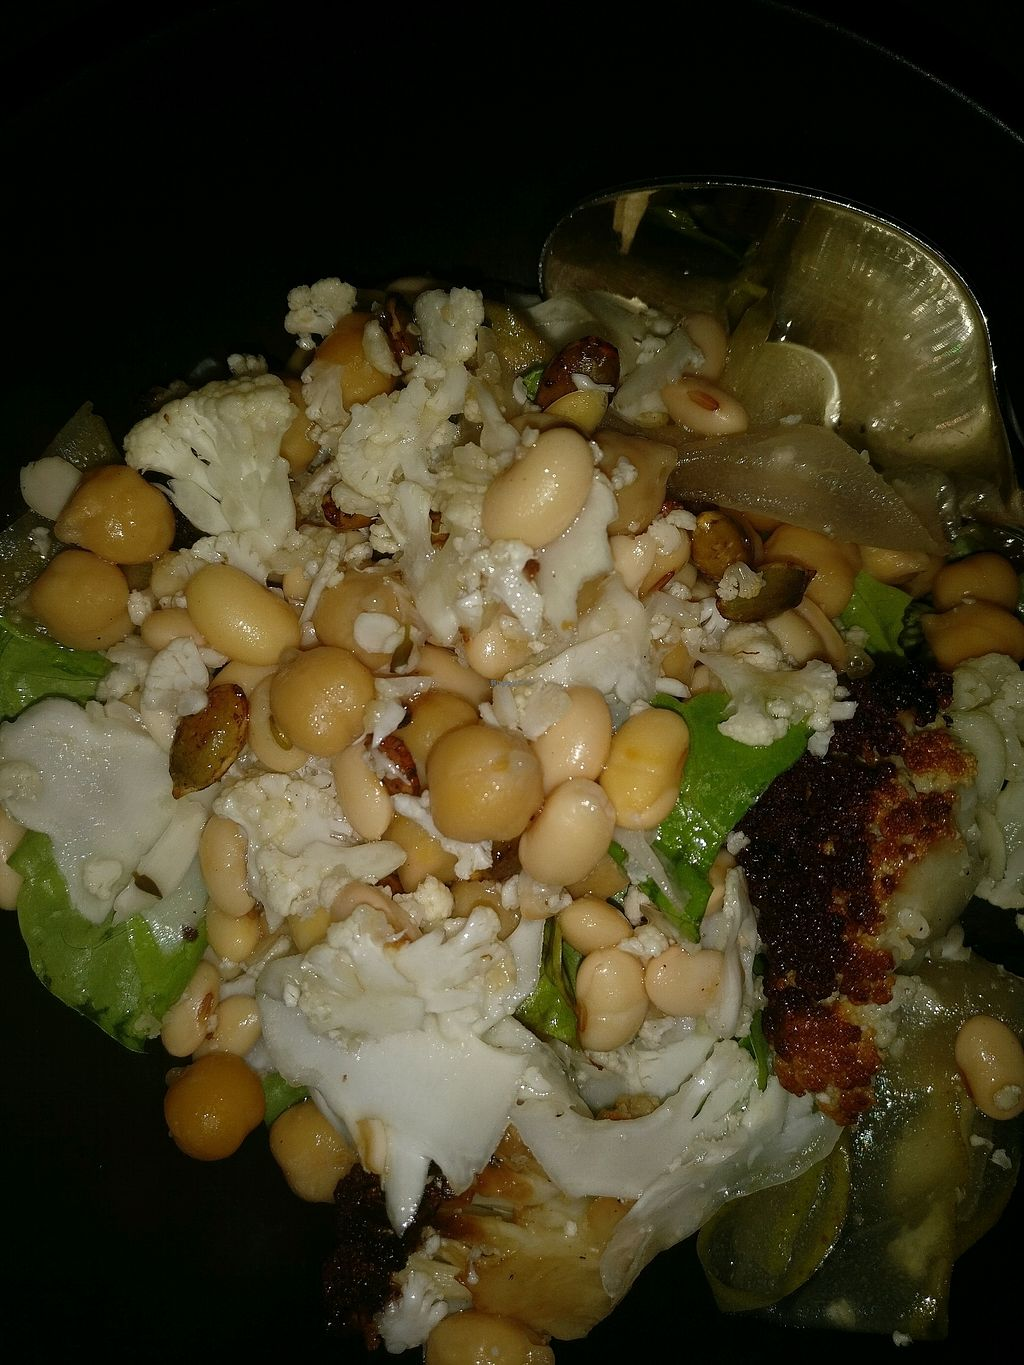 """Photo of Maha Restaurant  by <a href=""""/members/profile/Aloo"""">Aloo</a> <br/>cauliflower salad <br/> August 27, 2017  - <a href='/contact/abuse/image/34718/297722'>Report</a>"""